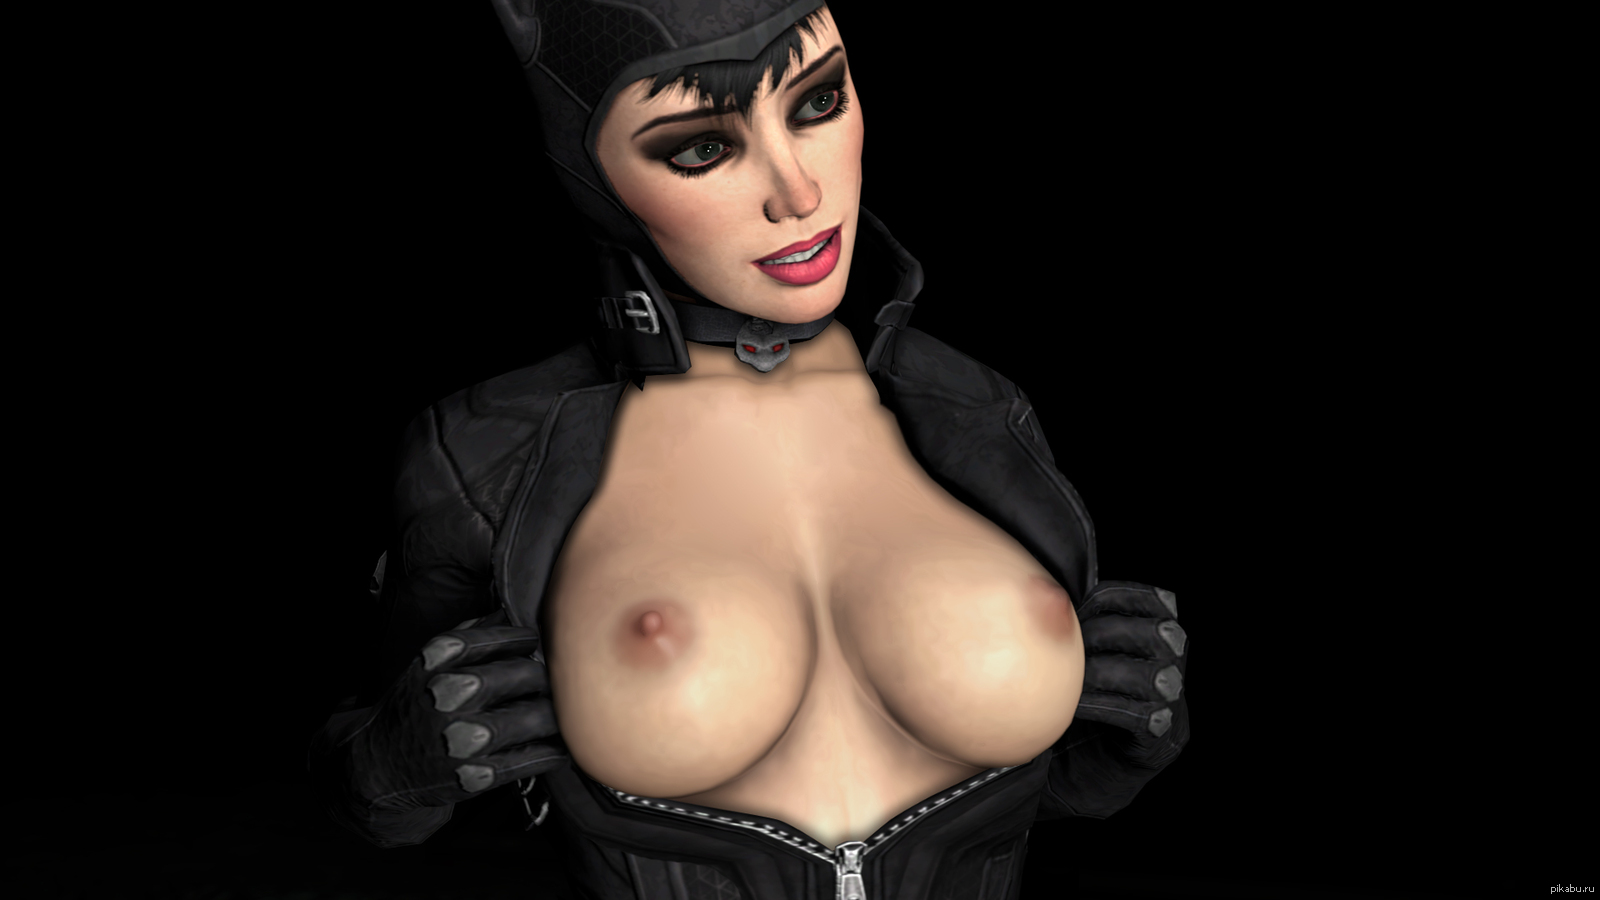 Batman arkham city porn hentai films